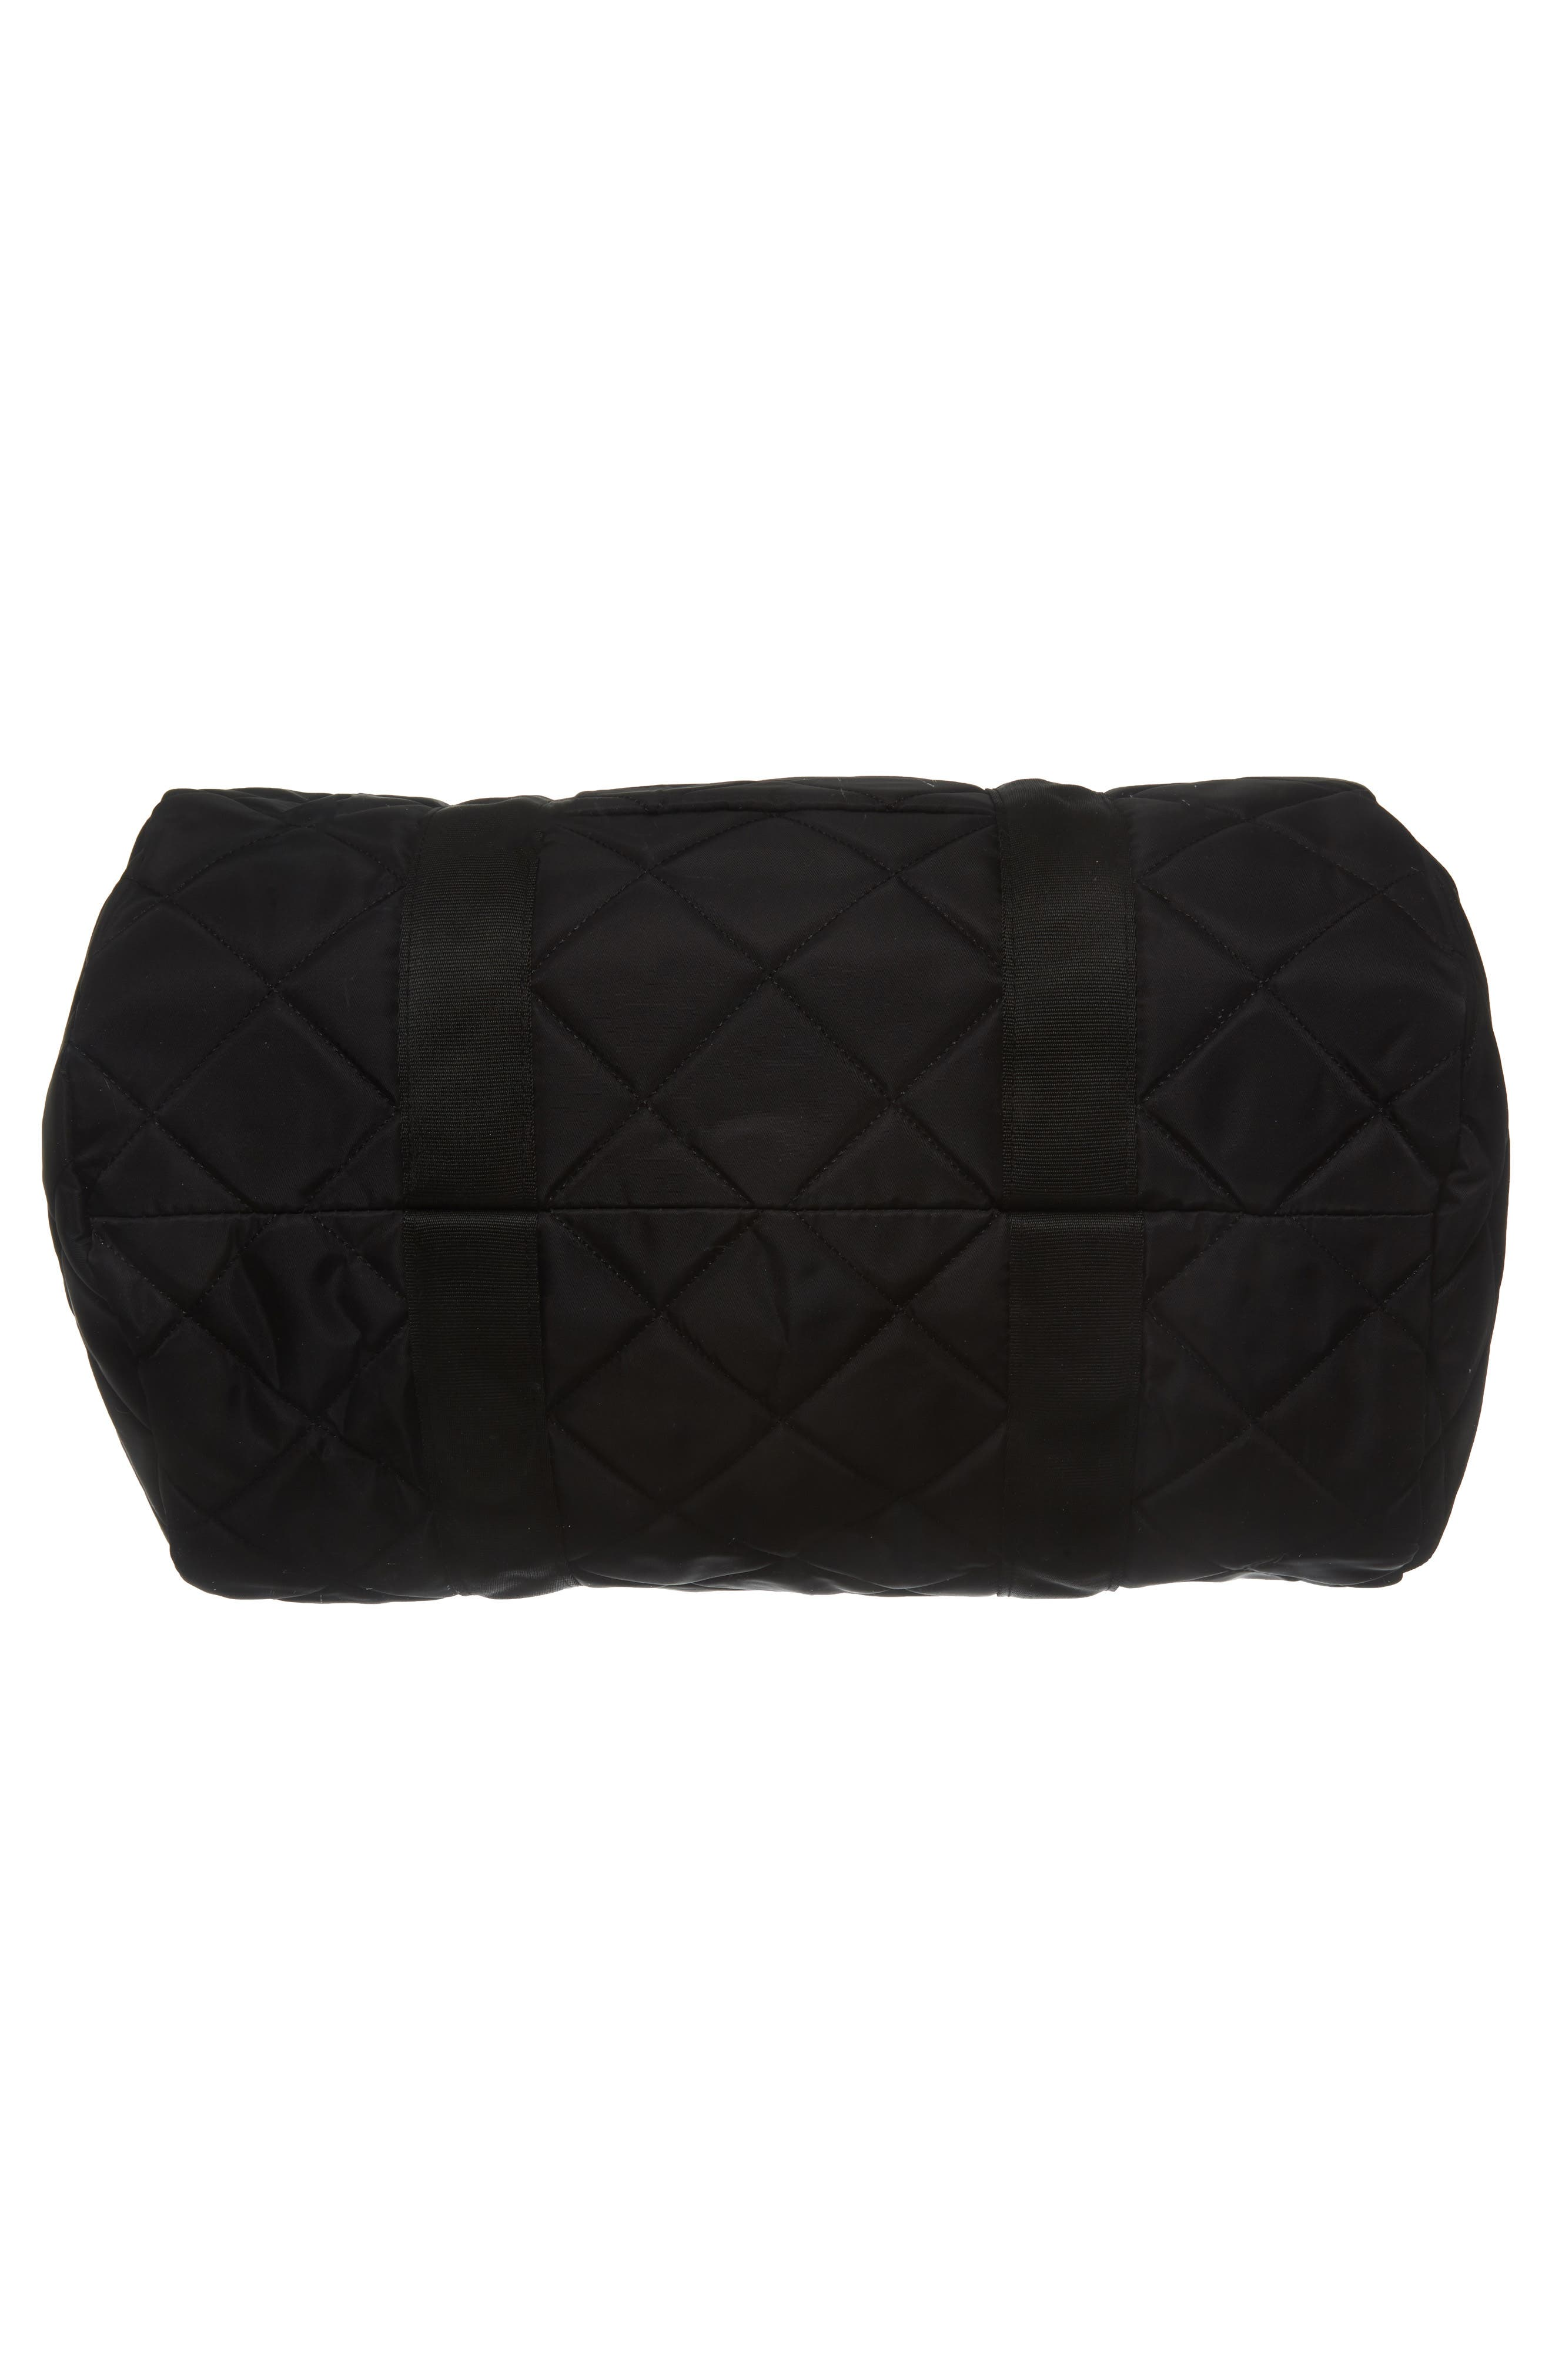 Roadie Small Duffel Bag,                             Alternate thumbnail 6, color,                             Quilted Black Nylon